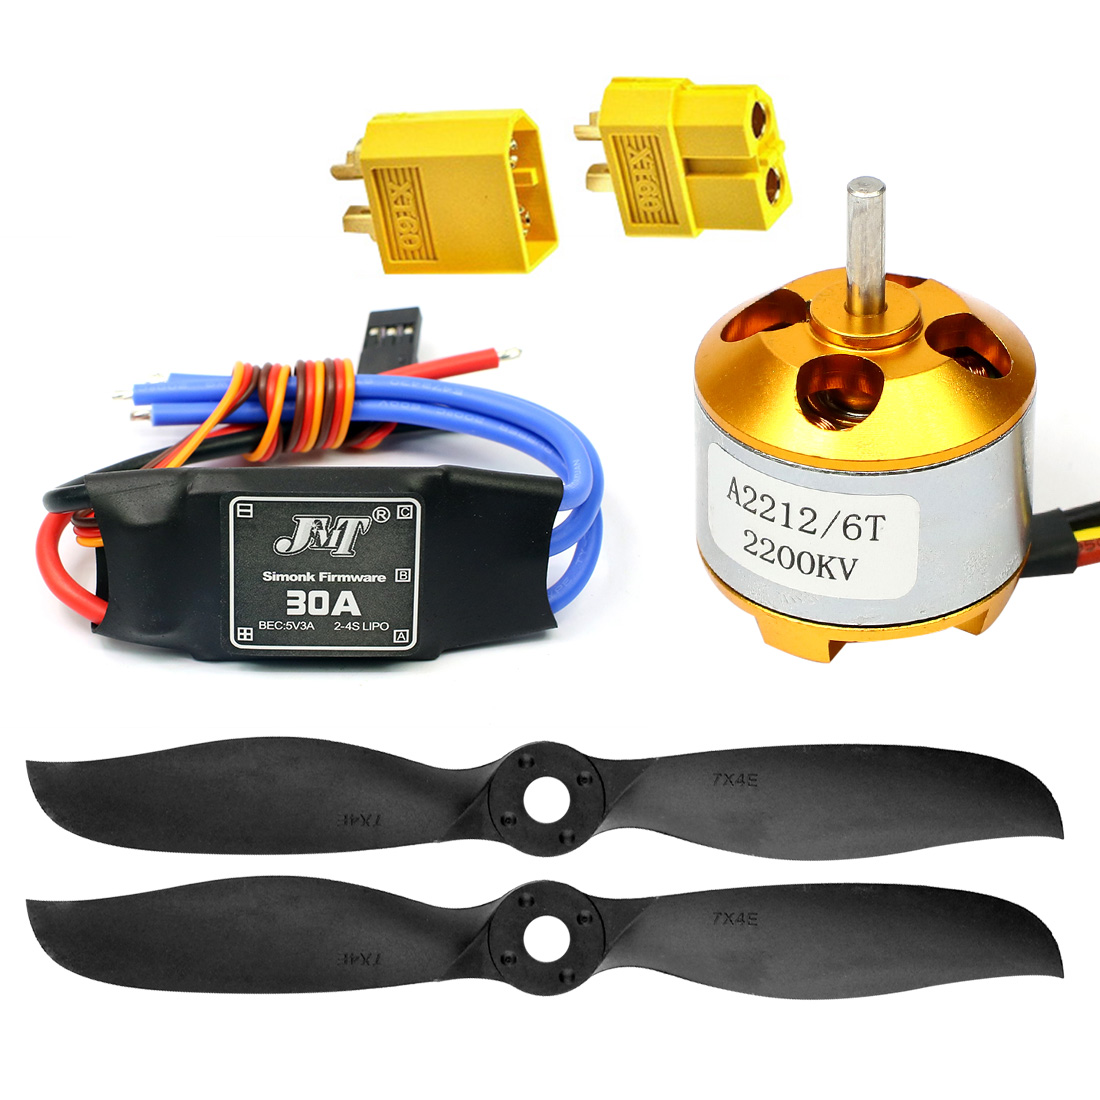 7040 7x4E 7*4E Propeller Spare Parts 2200KV A2212 Brushless Motor Simonk 30A ESC for RC Airplanes Quadcopter Acccessories купить в Москве 2019